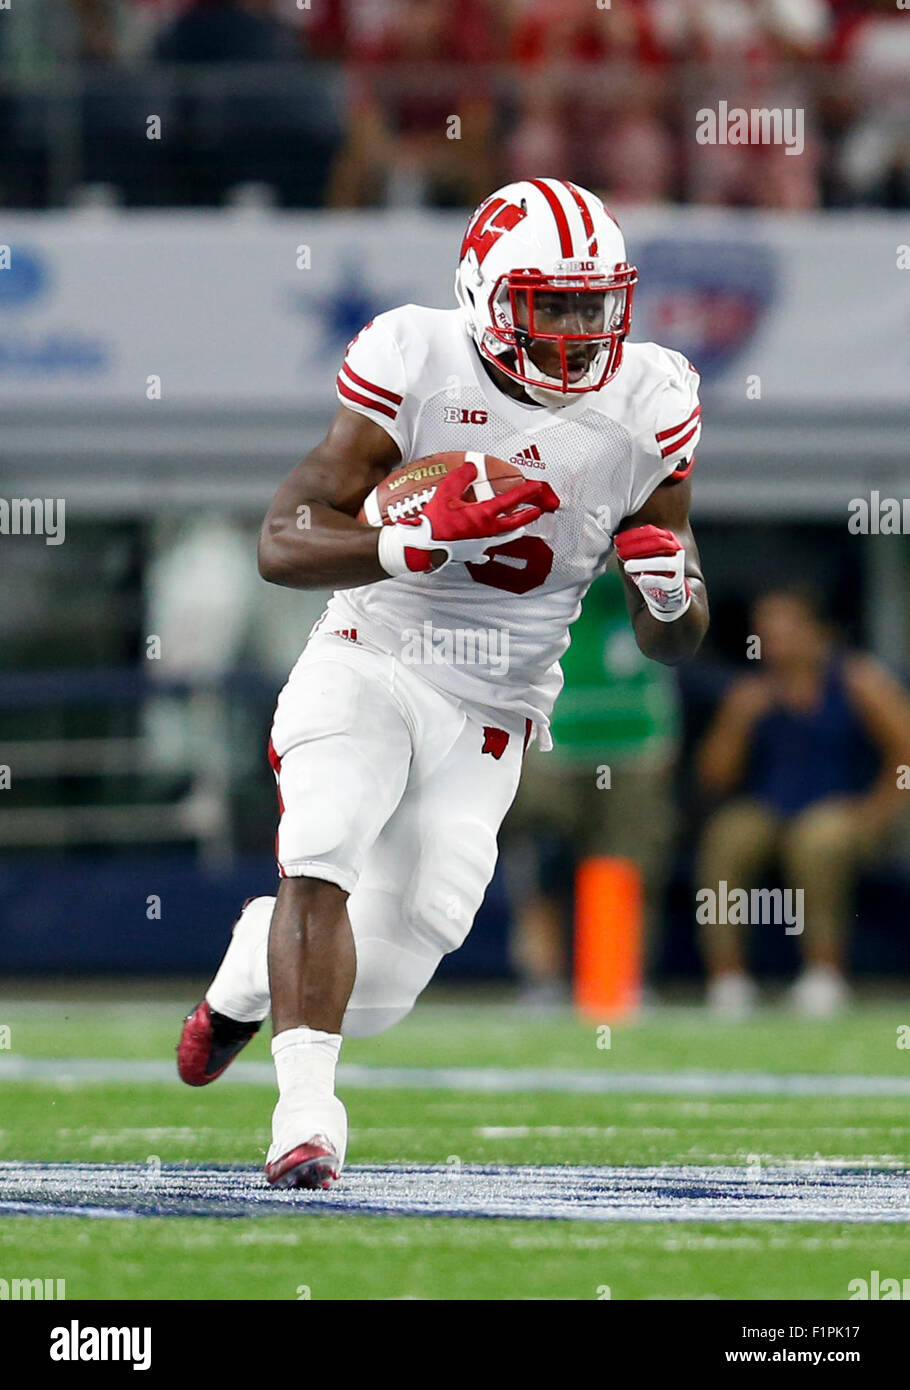 September 5, 2015: Wisconsin Badgers running back Corey Clement (6) carries the ball during the Advocate Classic - Stock Image